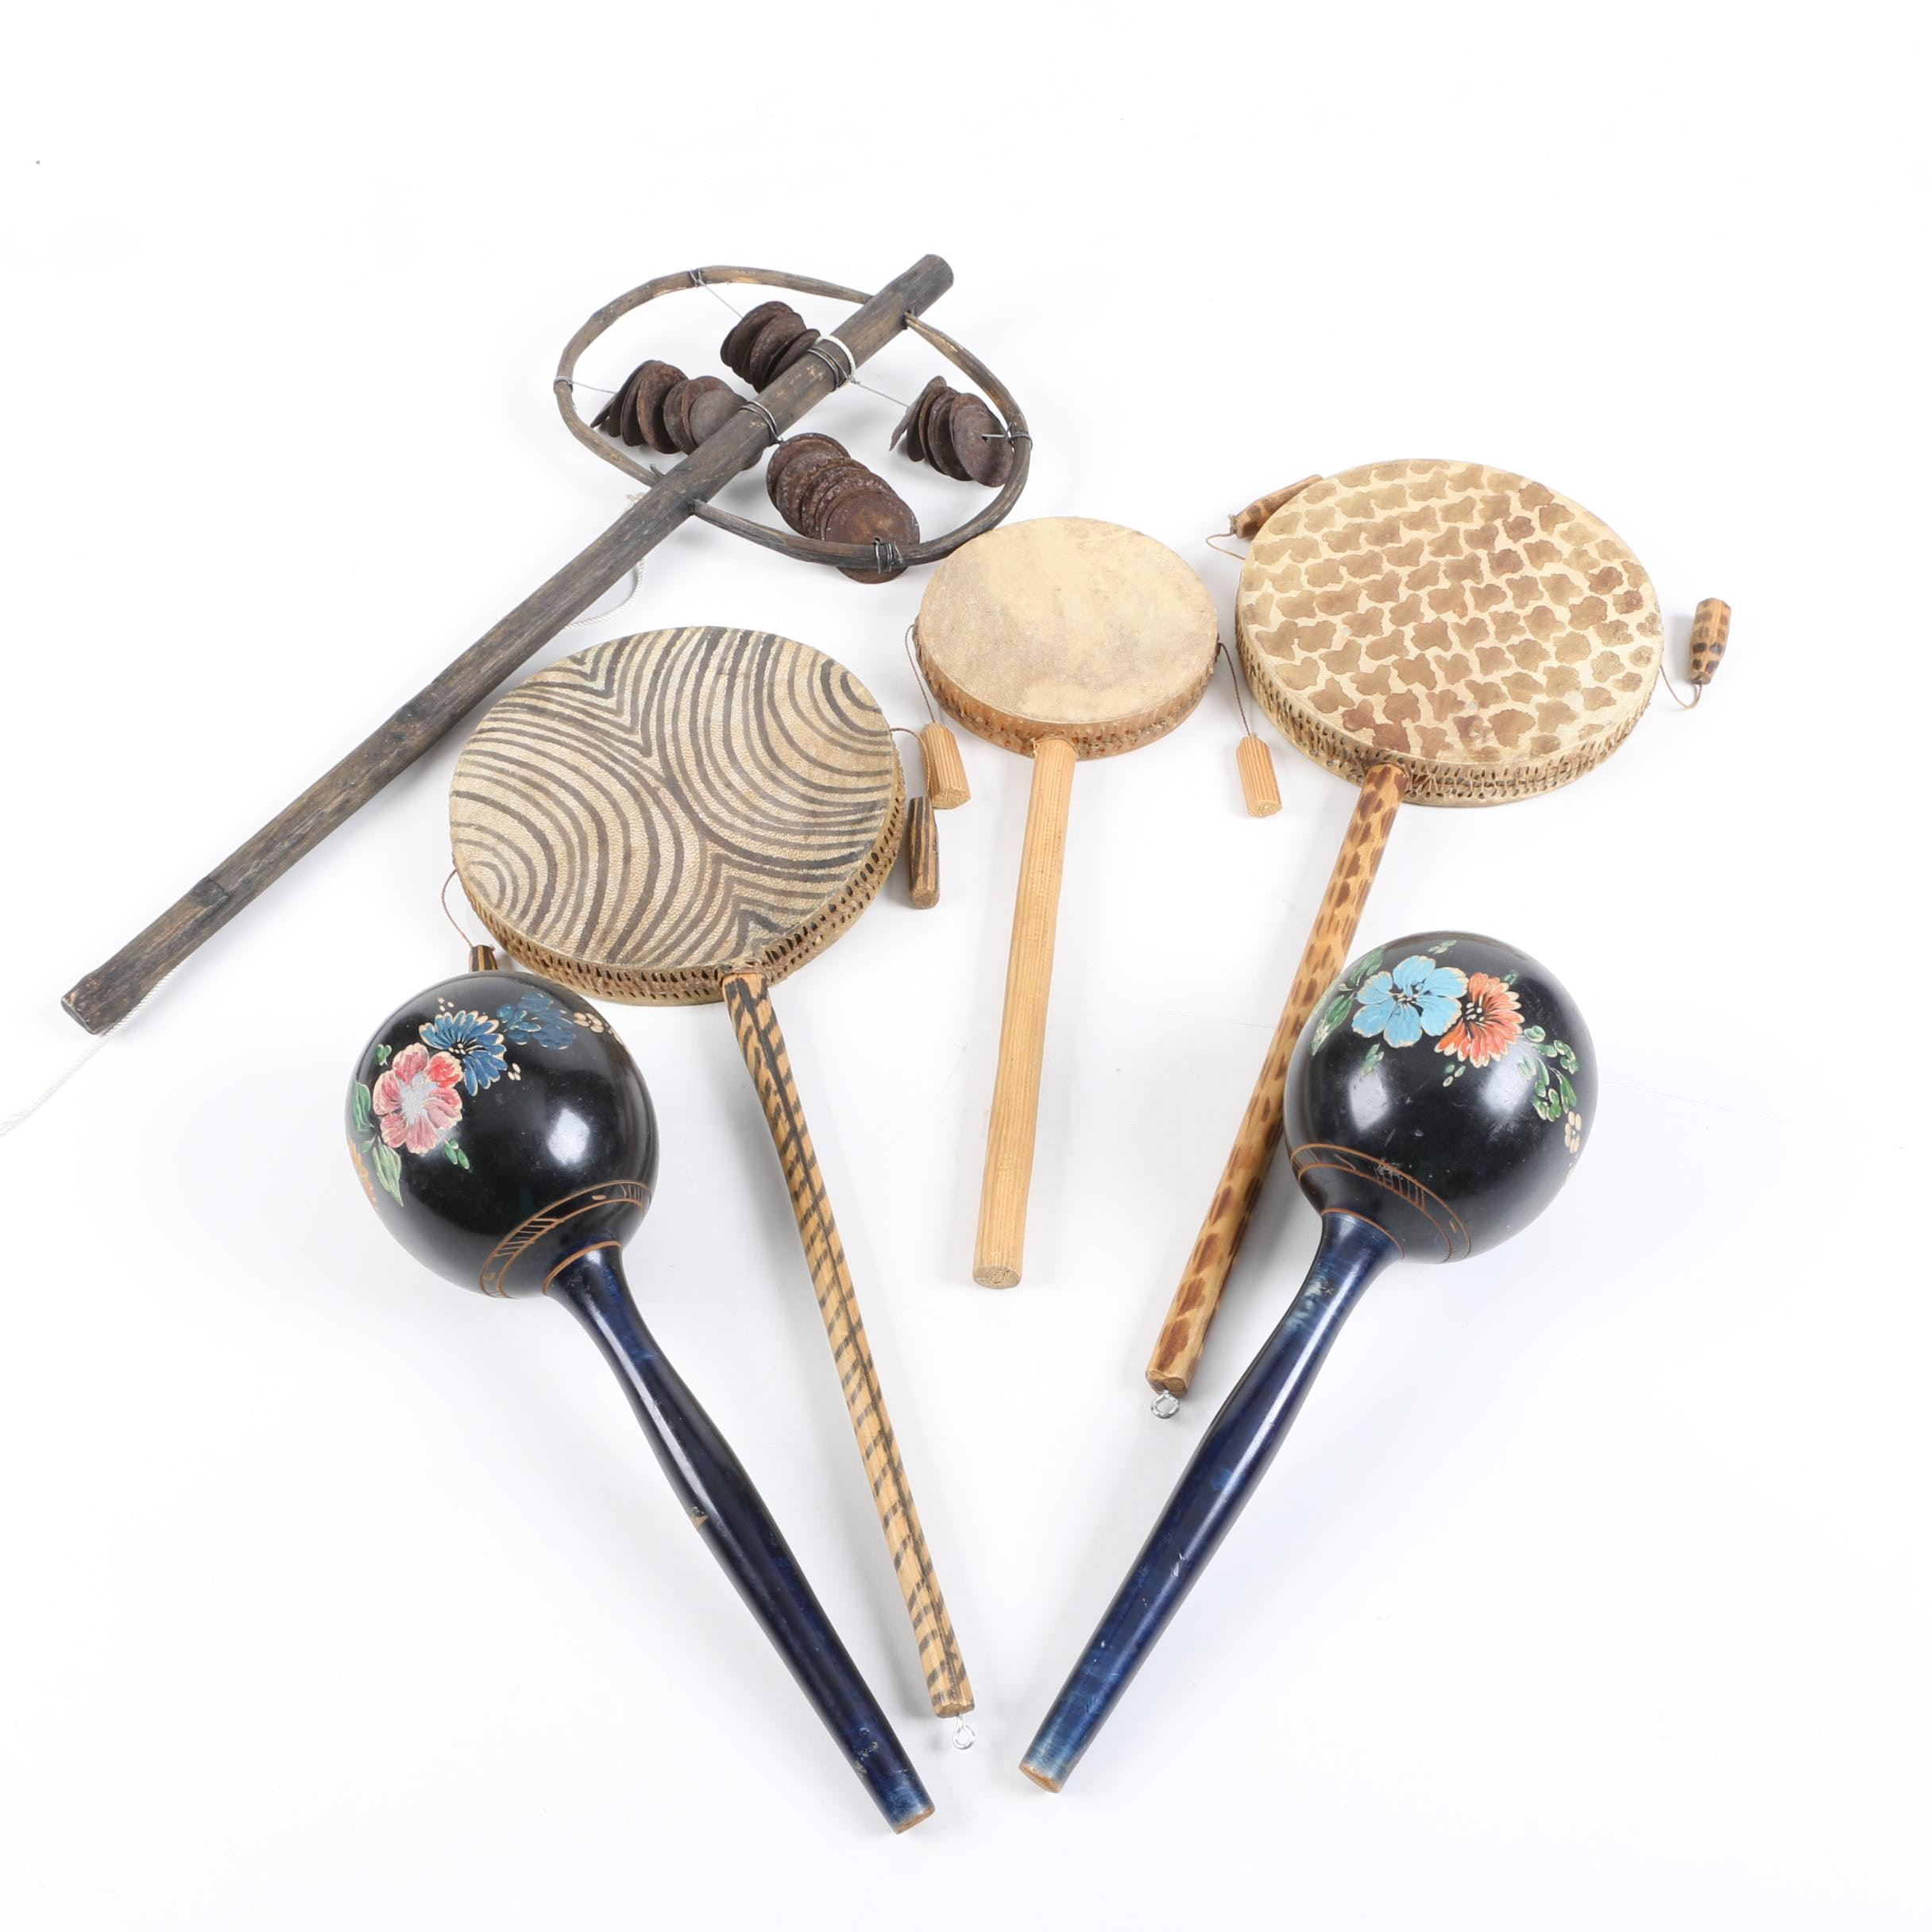 Maracas, Spin Drums and Sistrum